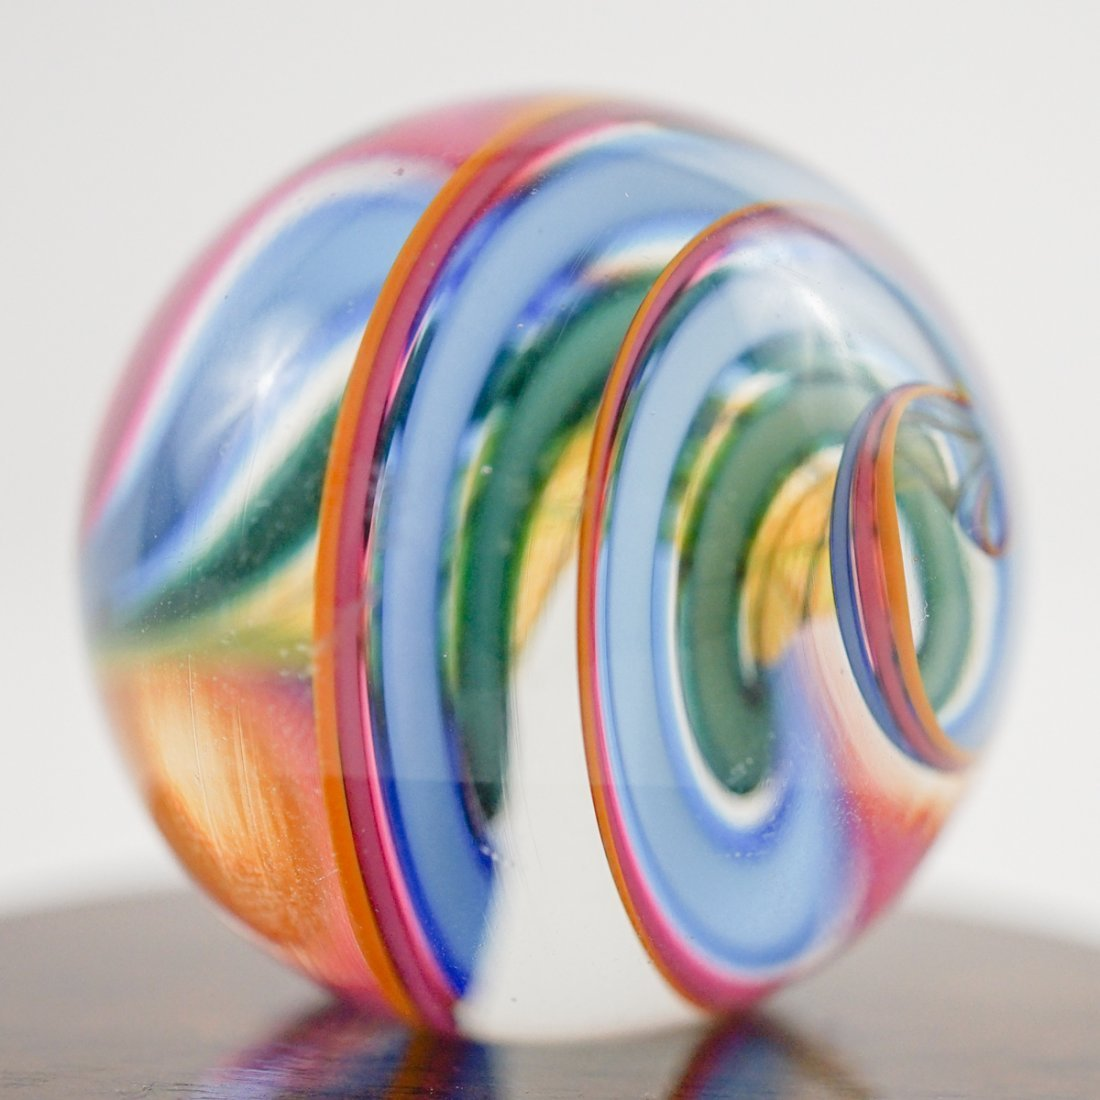 Two Large Handmade Glass Marbles - 4